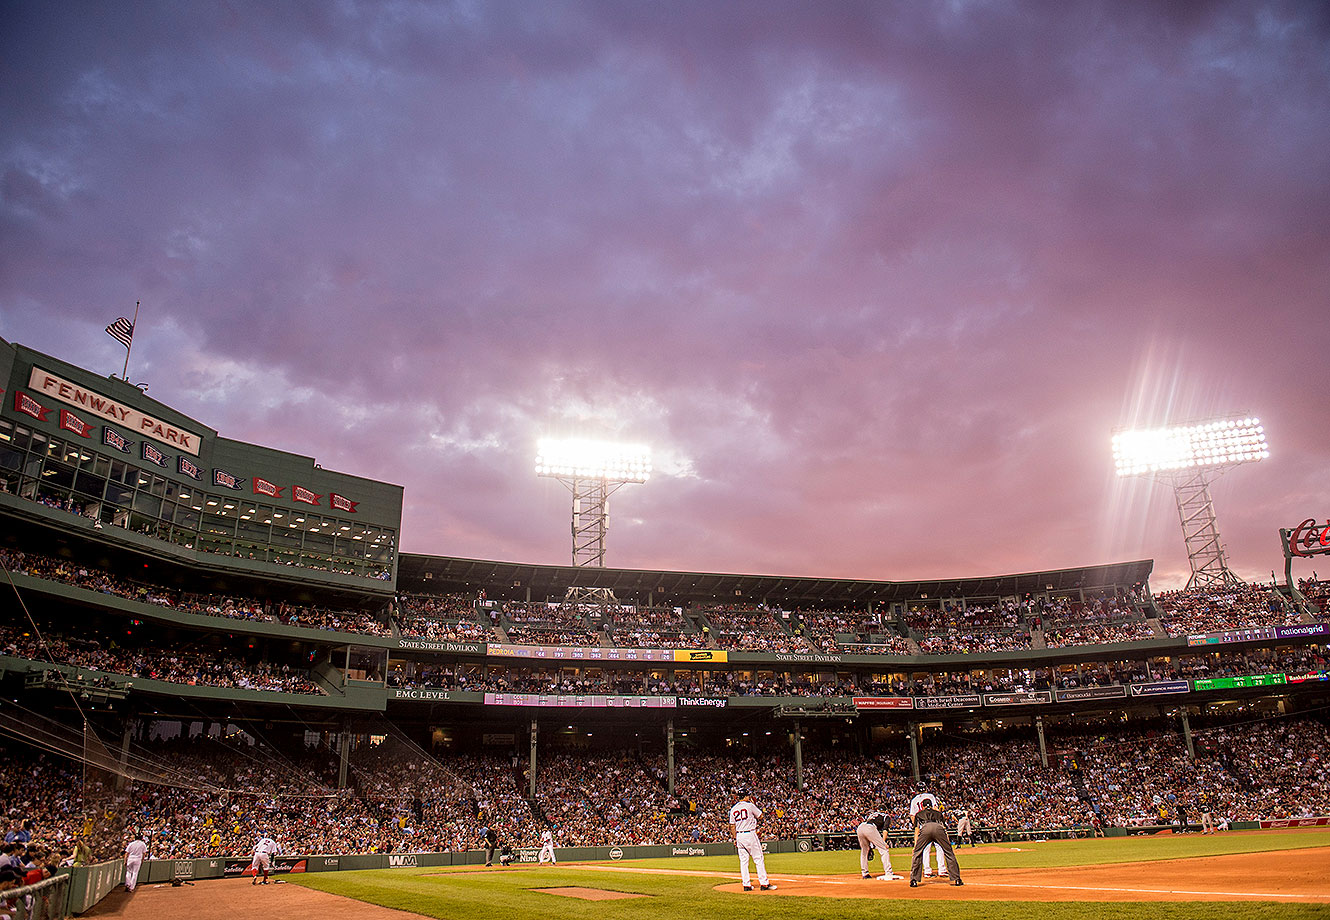 The sun sets during a game between the Boston Red Sox and the Colorado Rockies on May 25, 2016 at Fenway Park in Boston, Massachusetts.